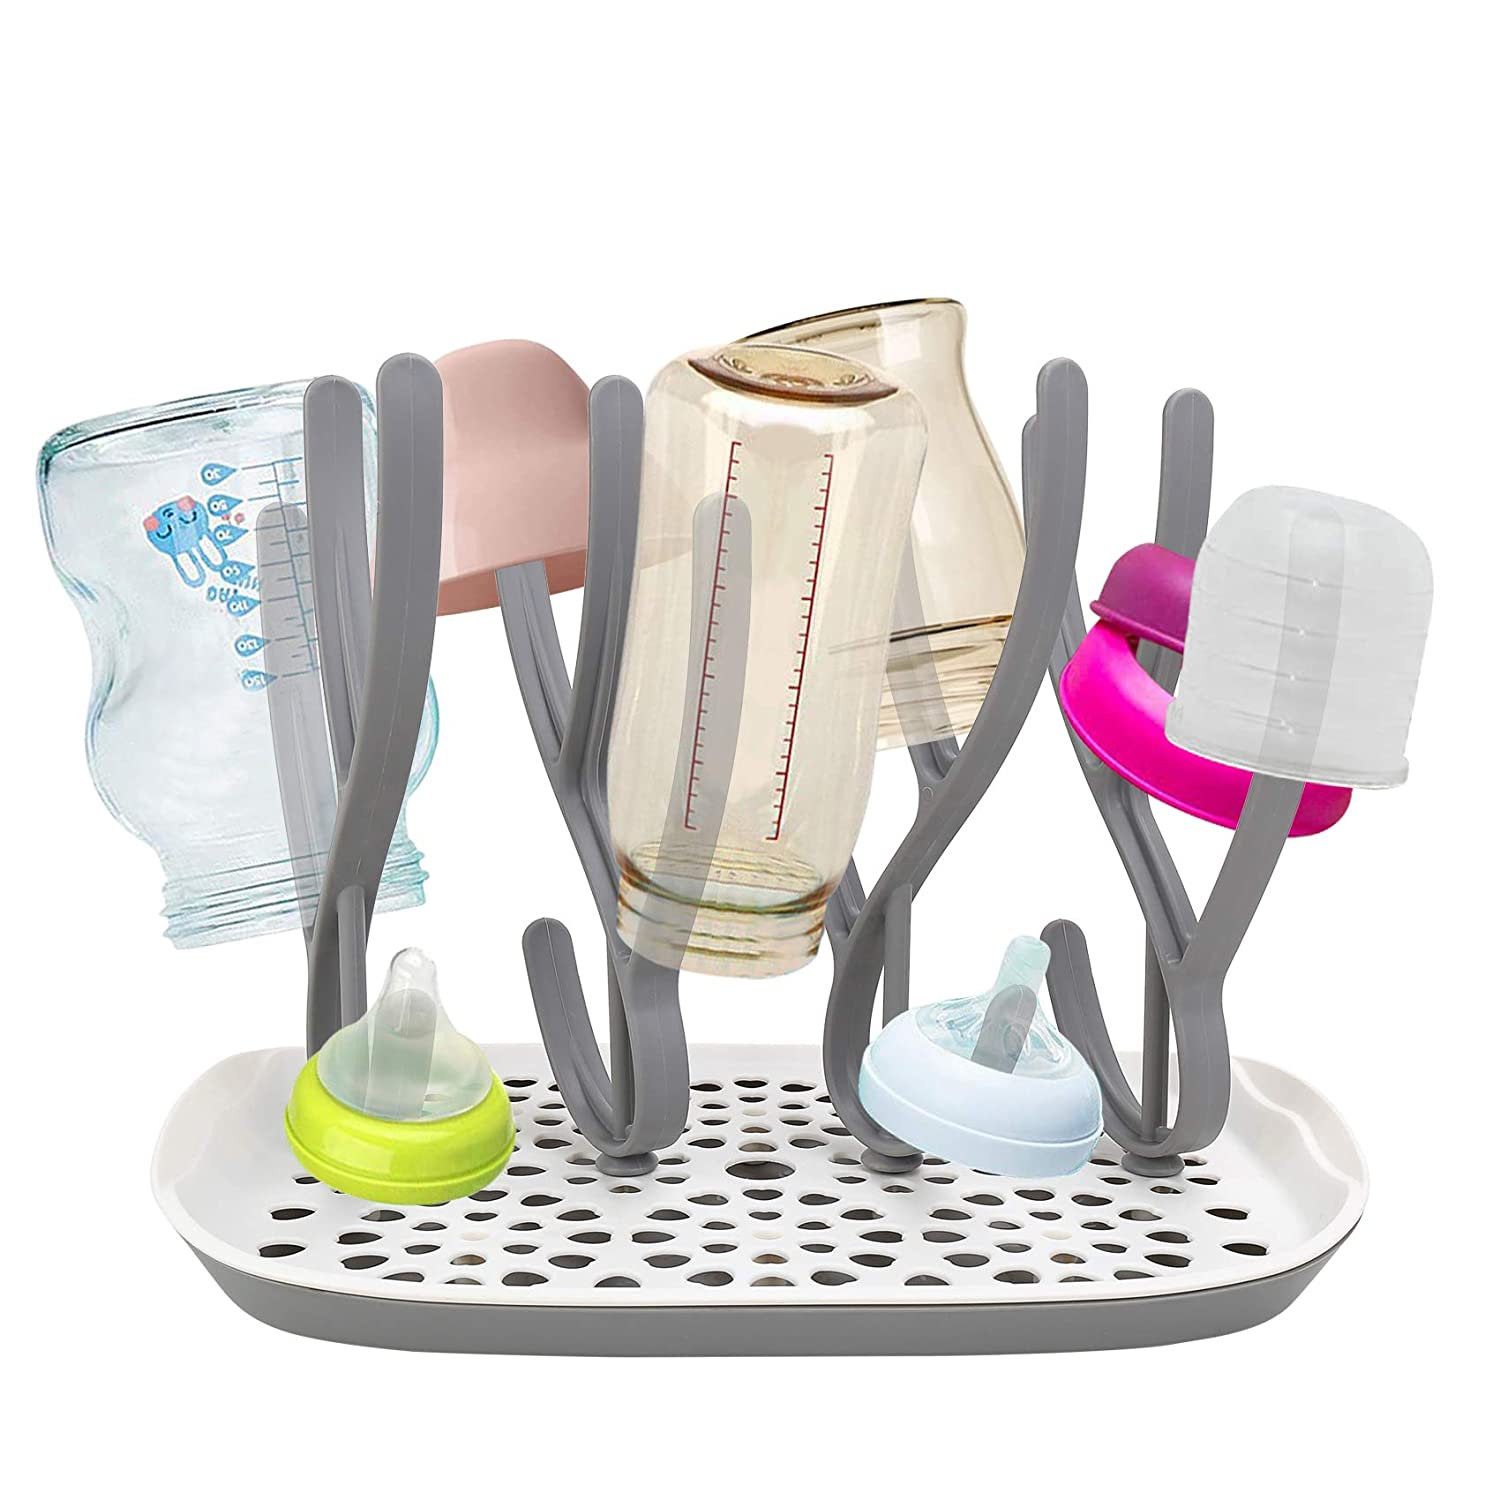 Bottle Drying It is very popular Rack with Tray Baby Holder Cap Max 47% OFF Dryer High Bottles